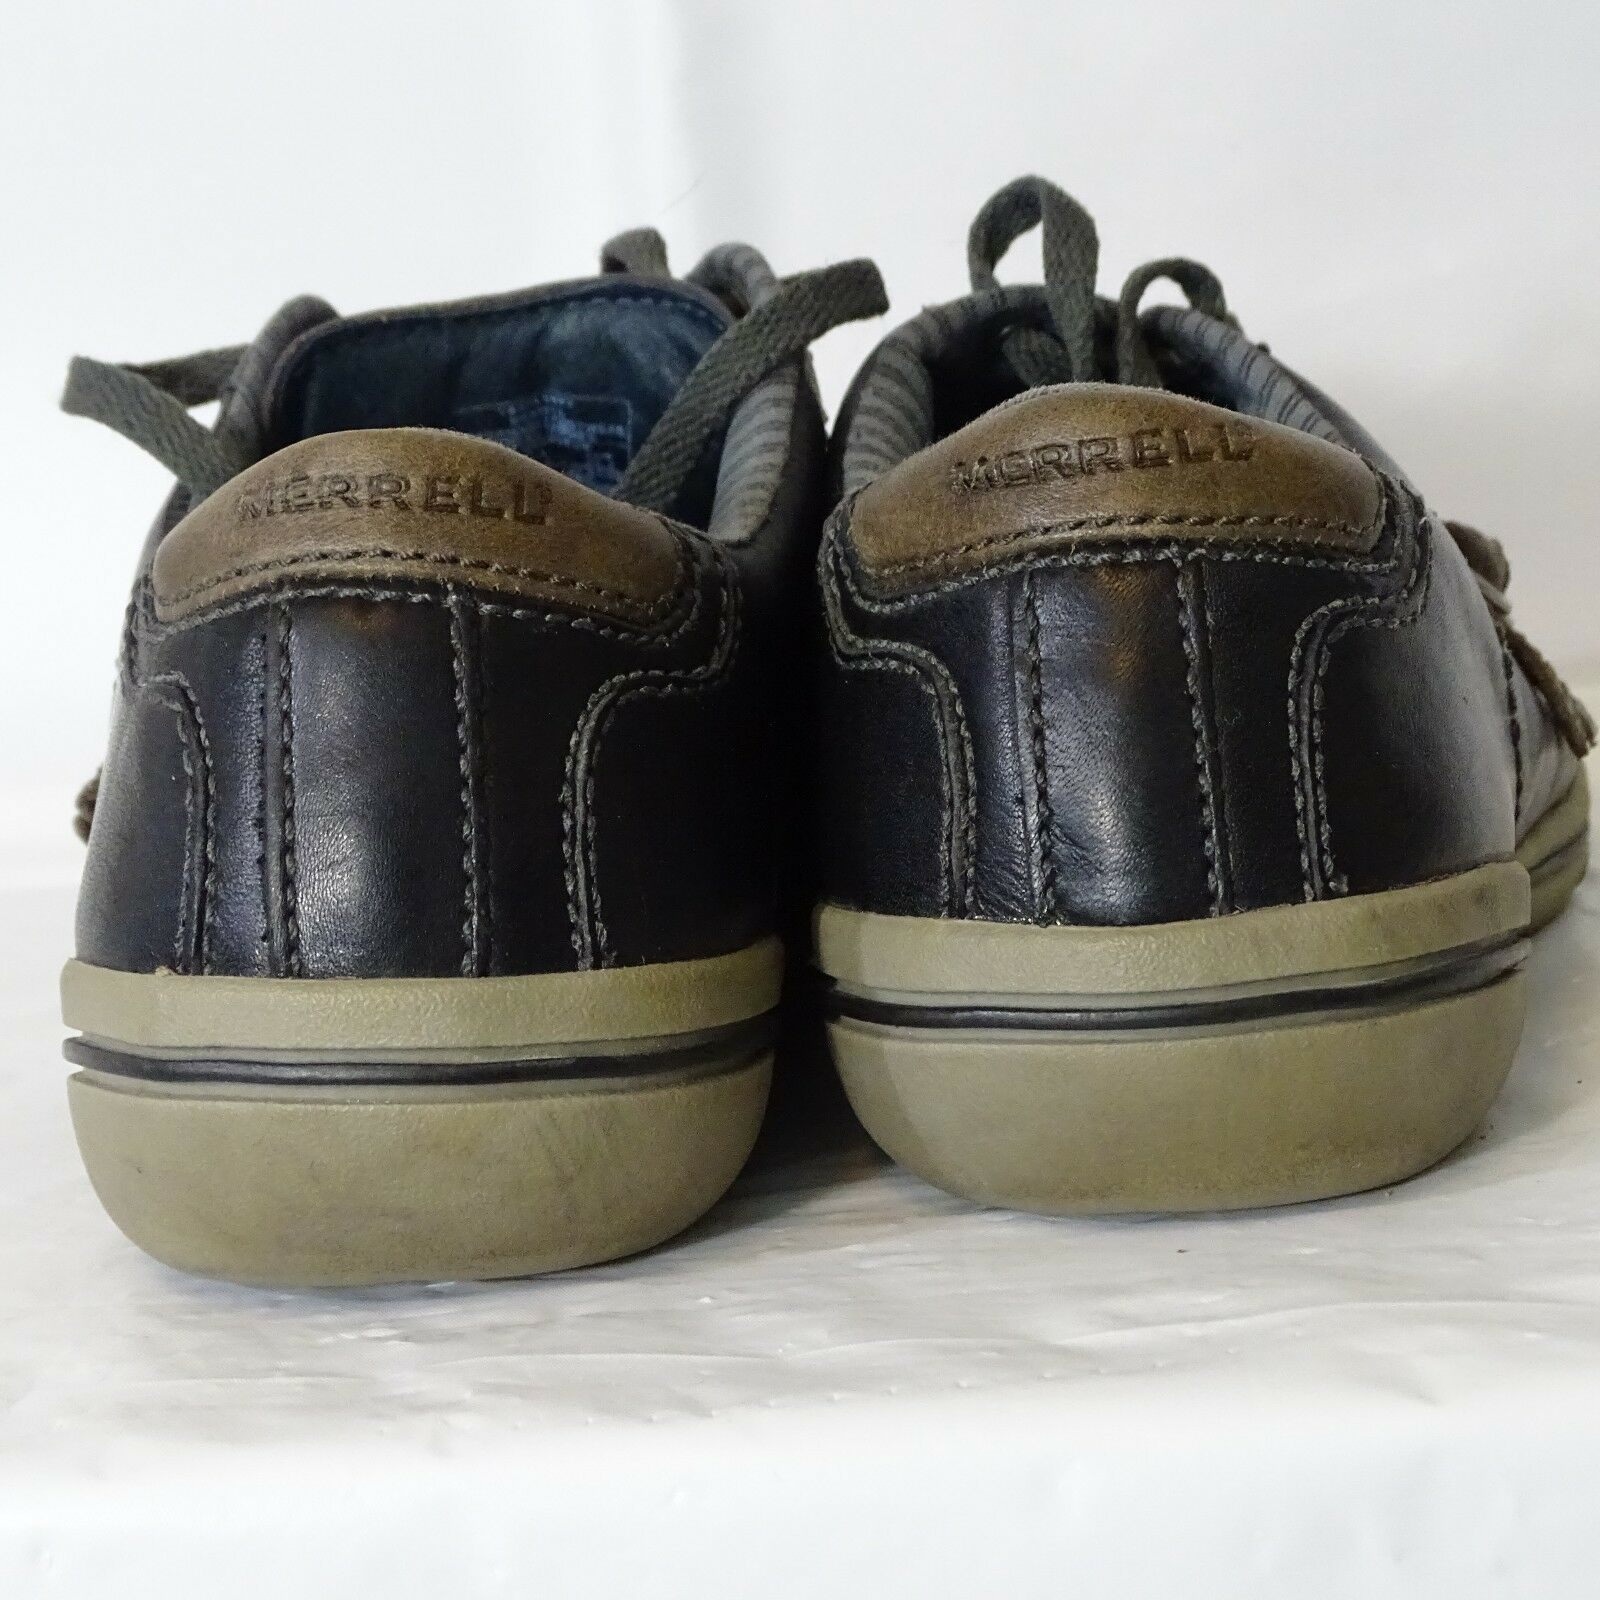 Merrell Lace Up Shoes Vesta Buckled Straps Women Size 8 Navy Blue Brown